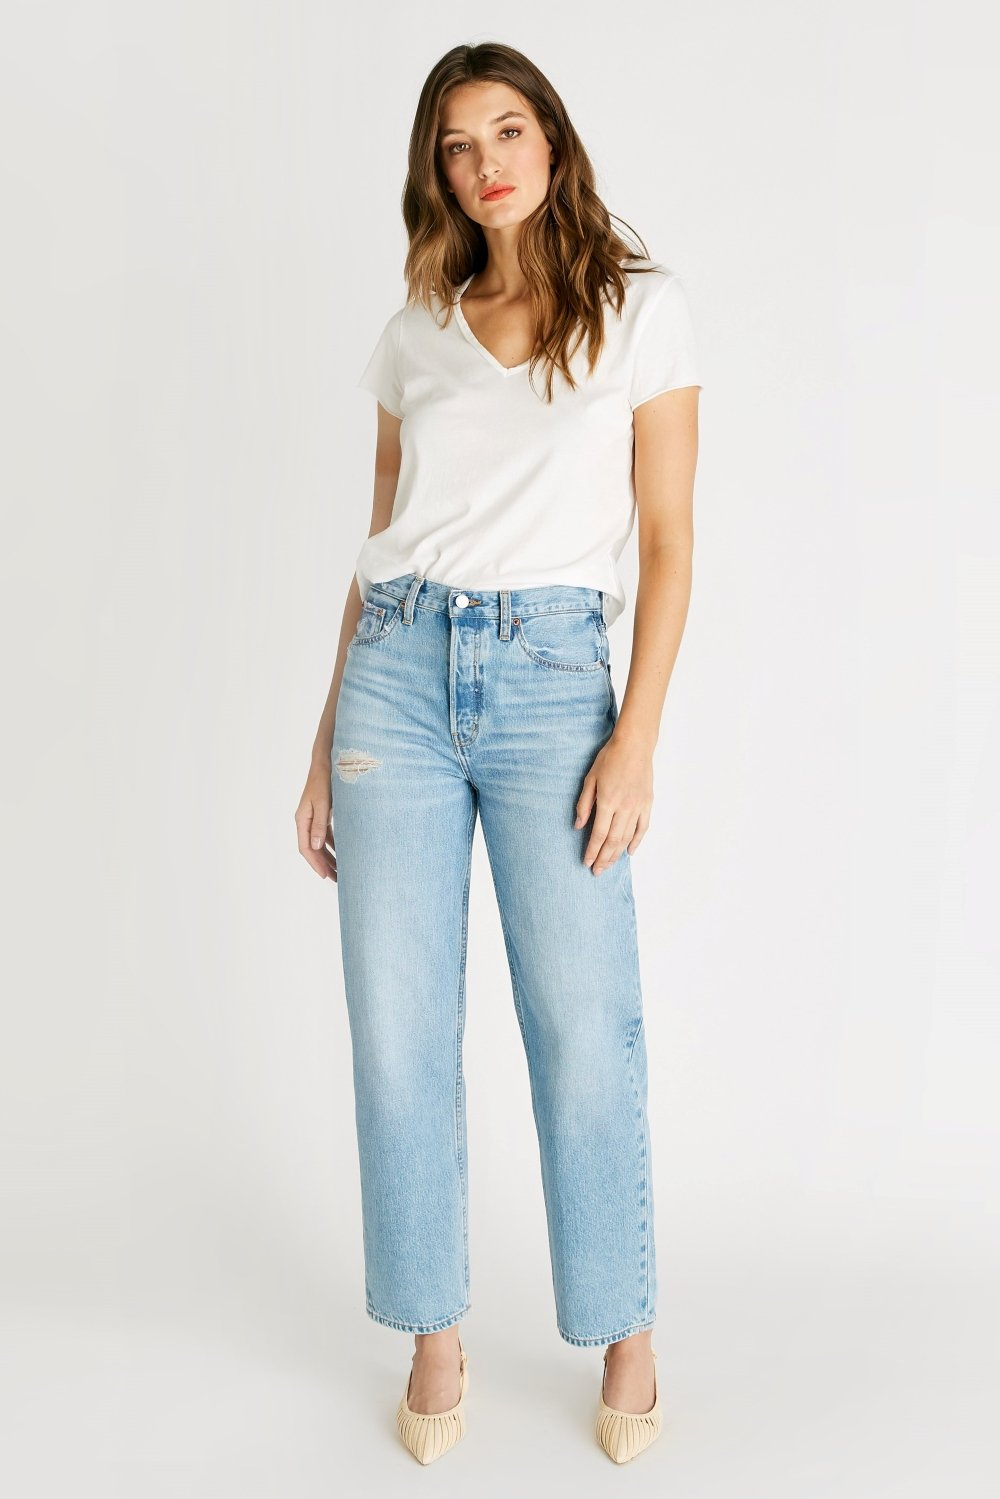 Tyler High Rise Vintage Straight - Mystic Canyon by Etica Denim, available on eticadenim.com for $178 Alessandra Ambrosio Pants Exact Product